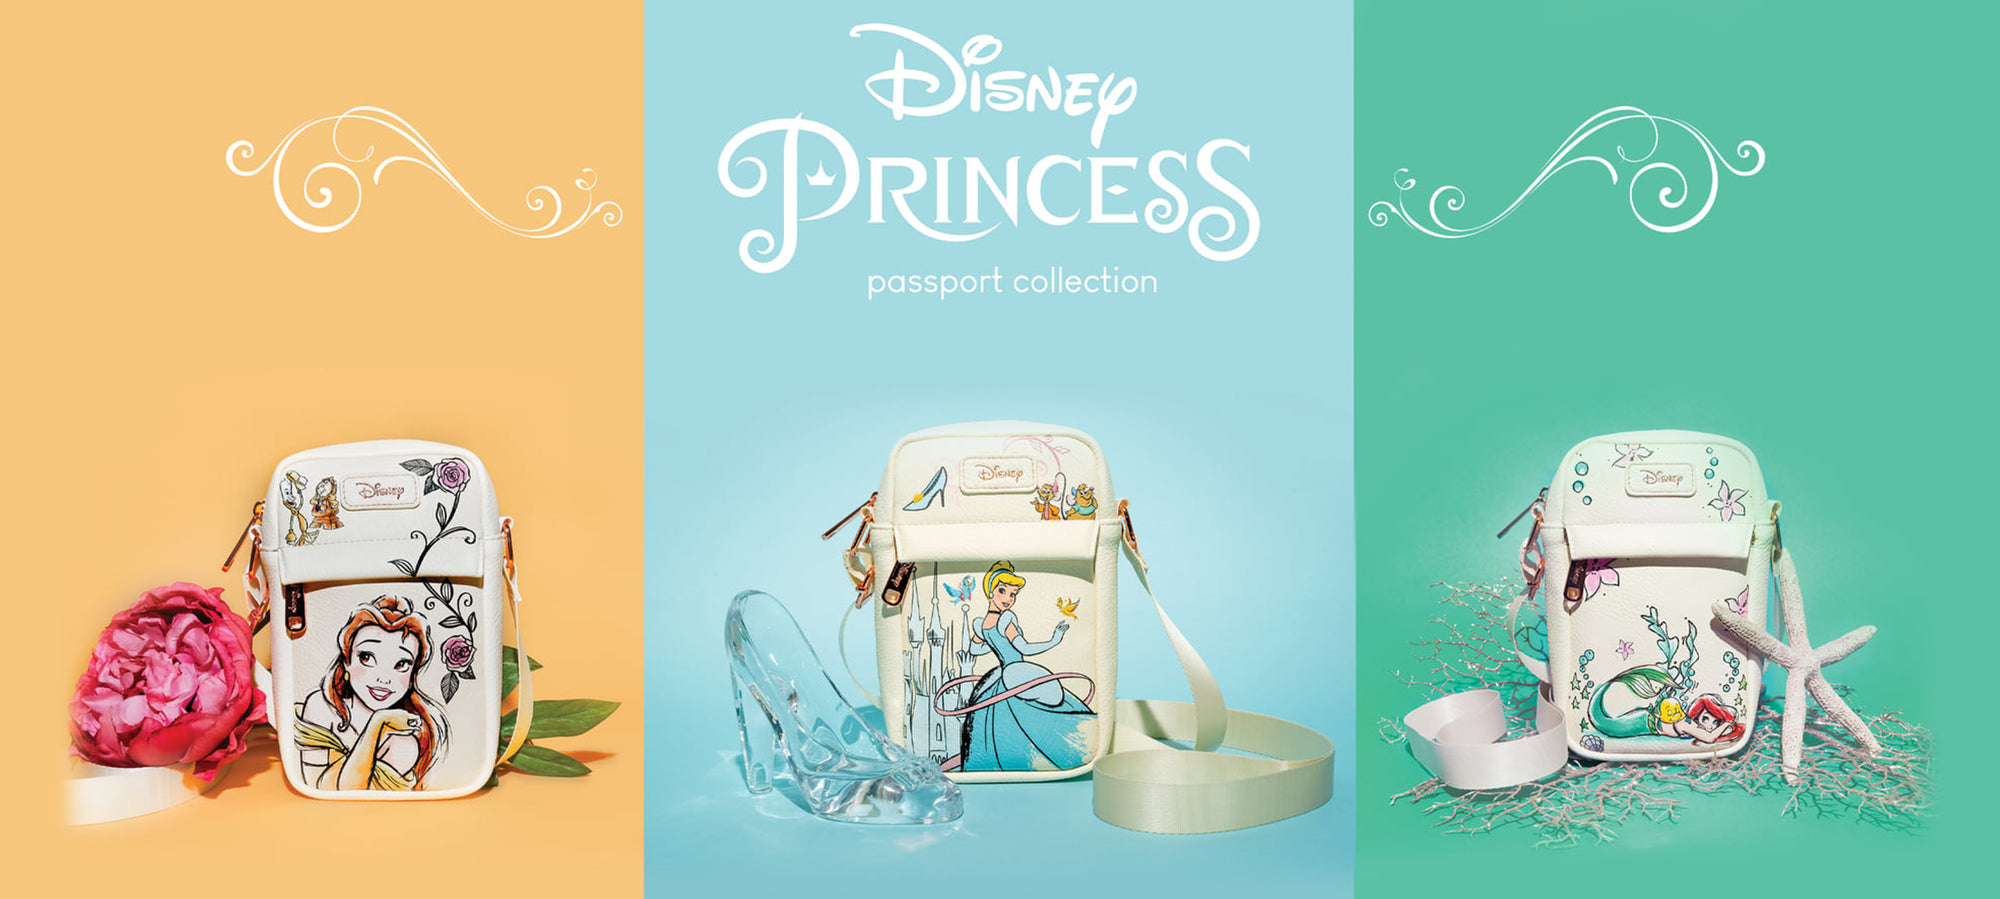 The Princess Passport Collection